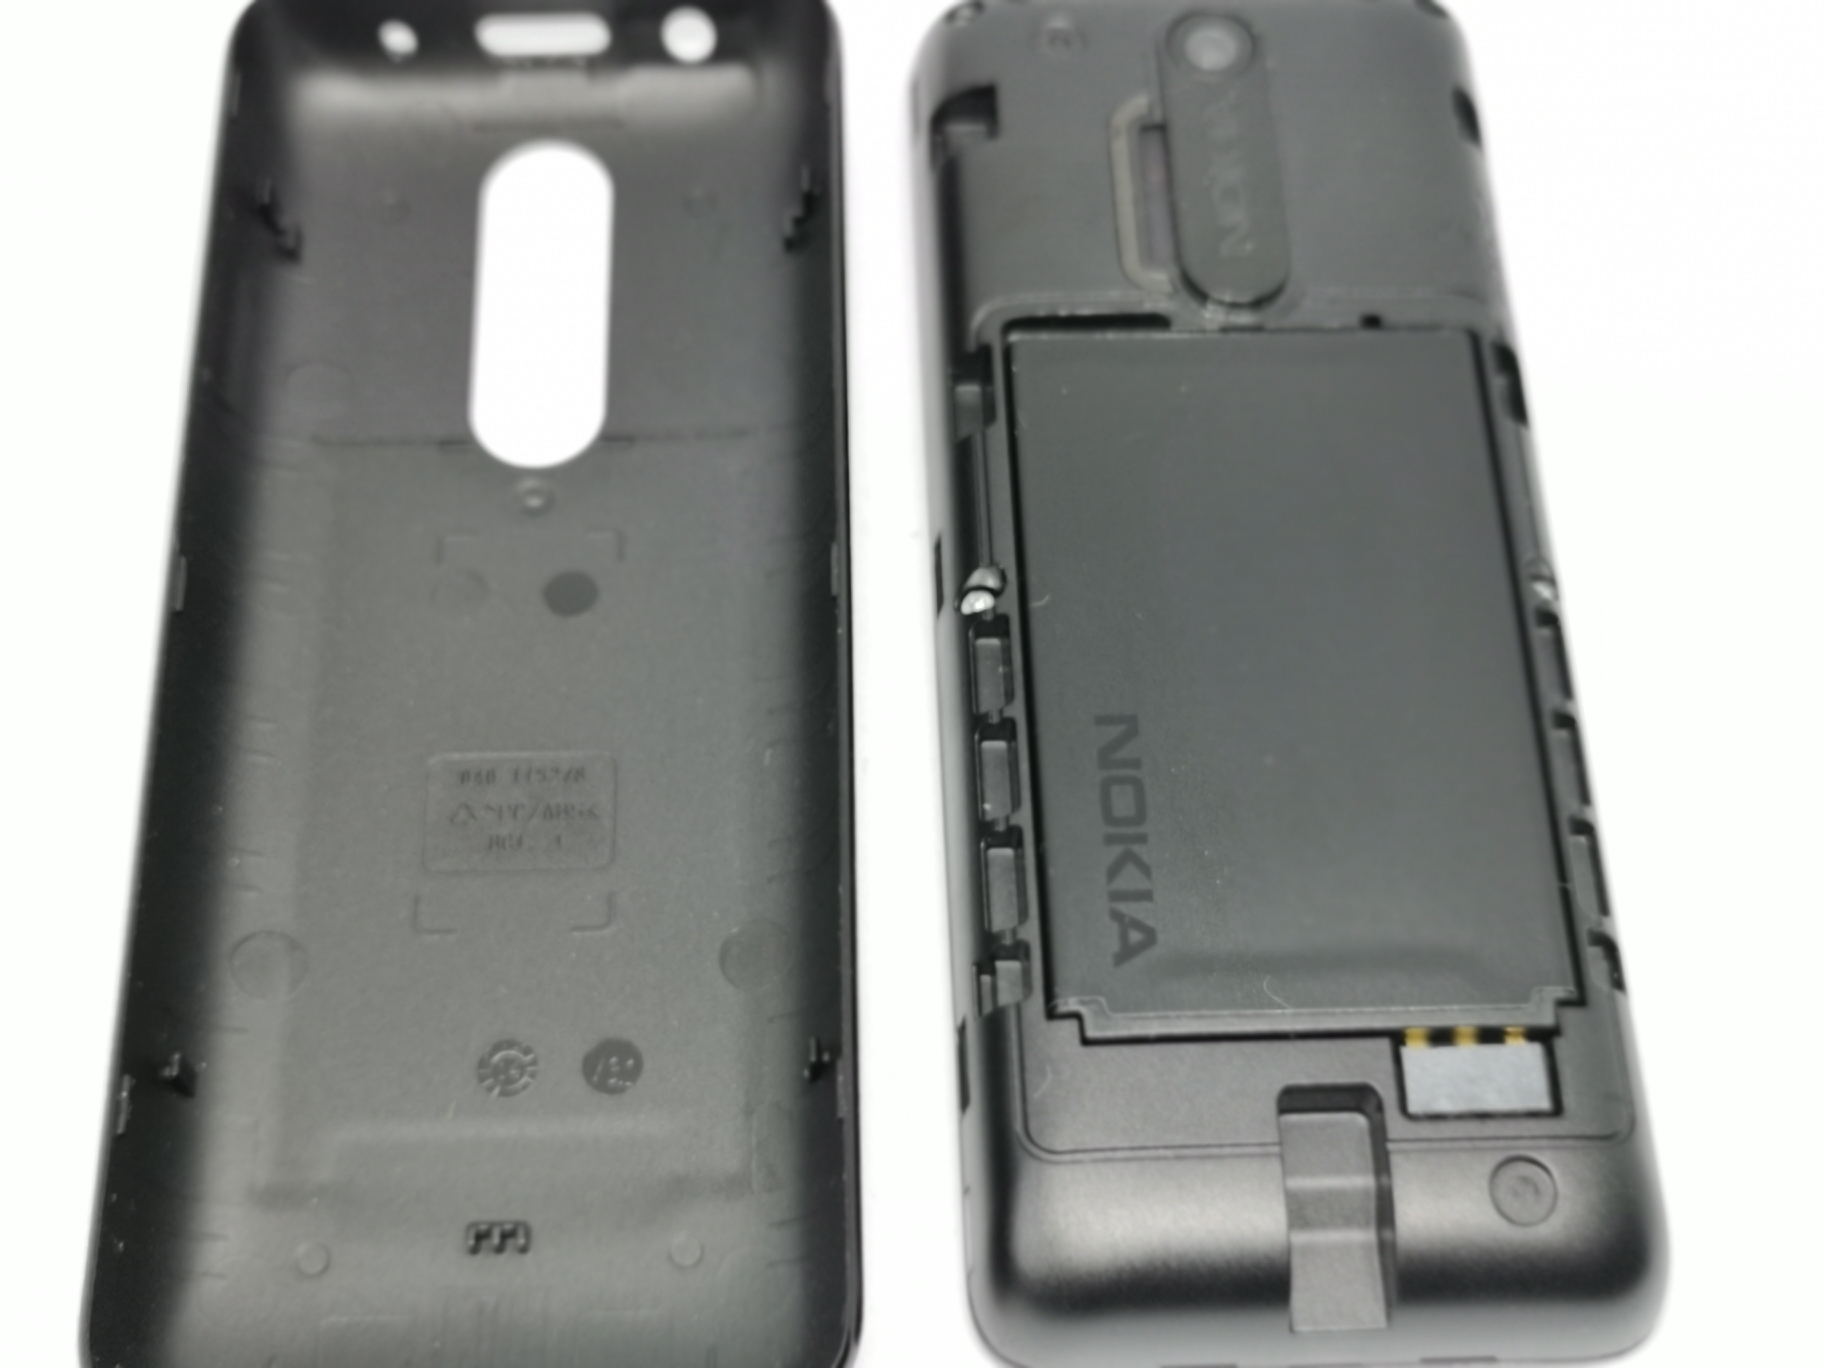 Nokia 108 Review - Budget Mobile Phone Gains Imaging